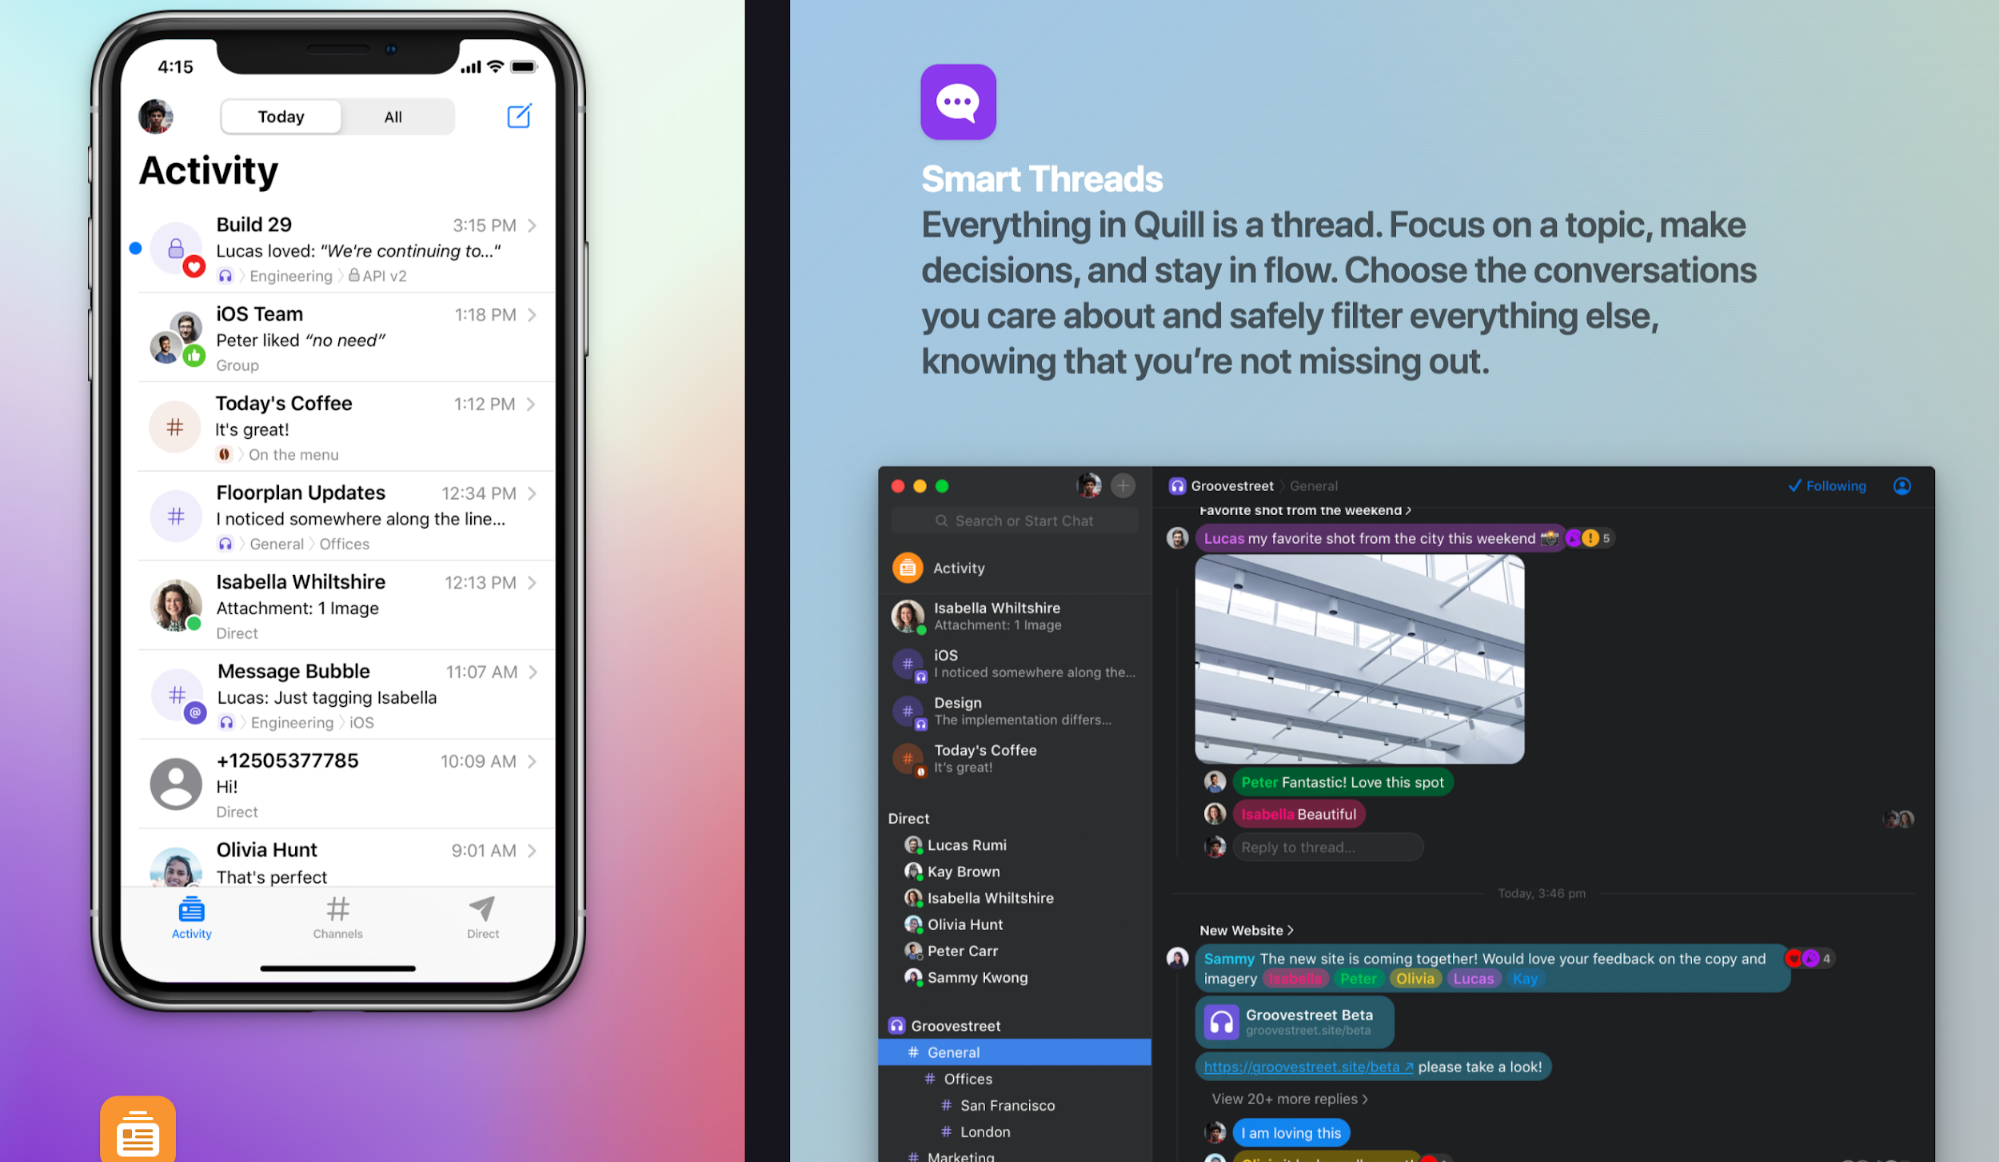 Quill Chat makes it easy to focus on work with excellent UX design in its app